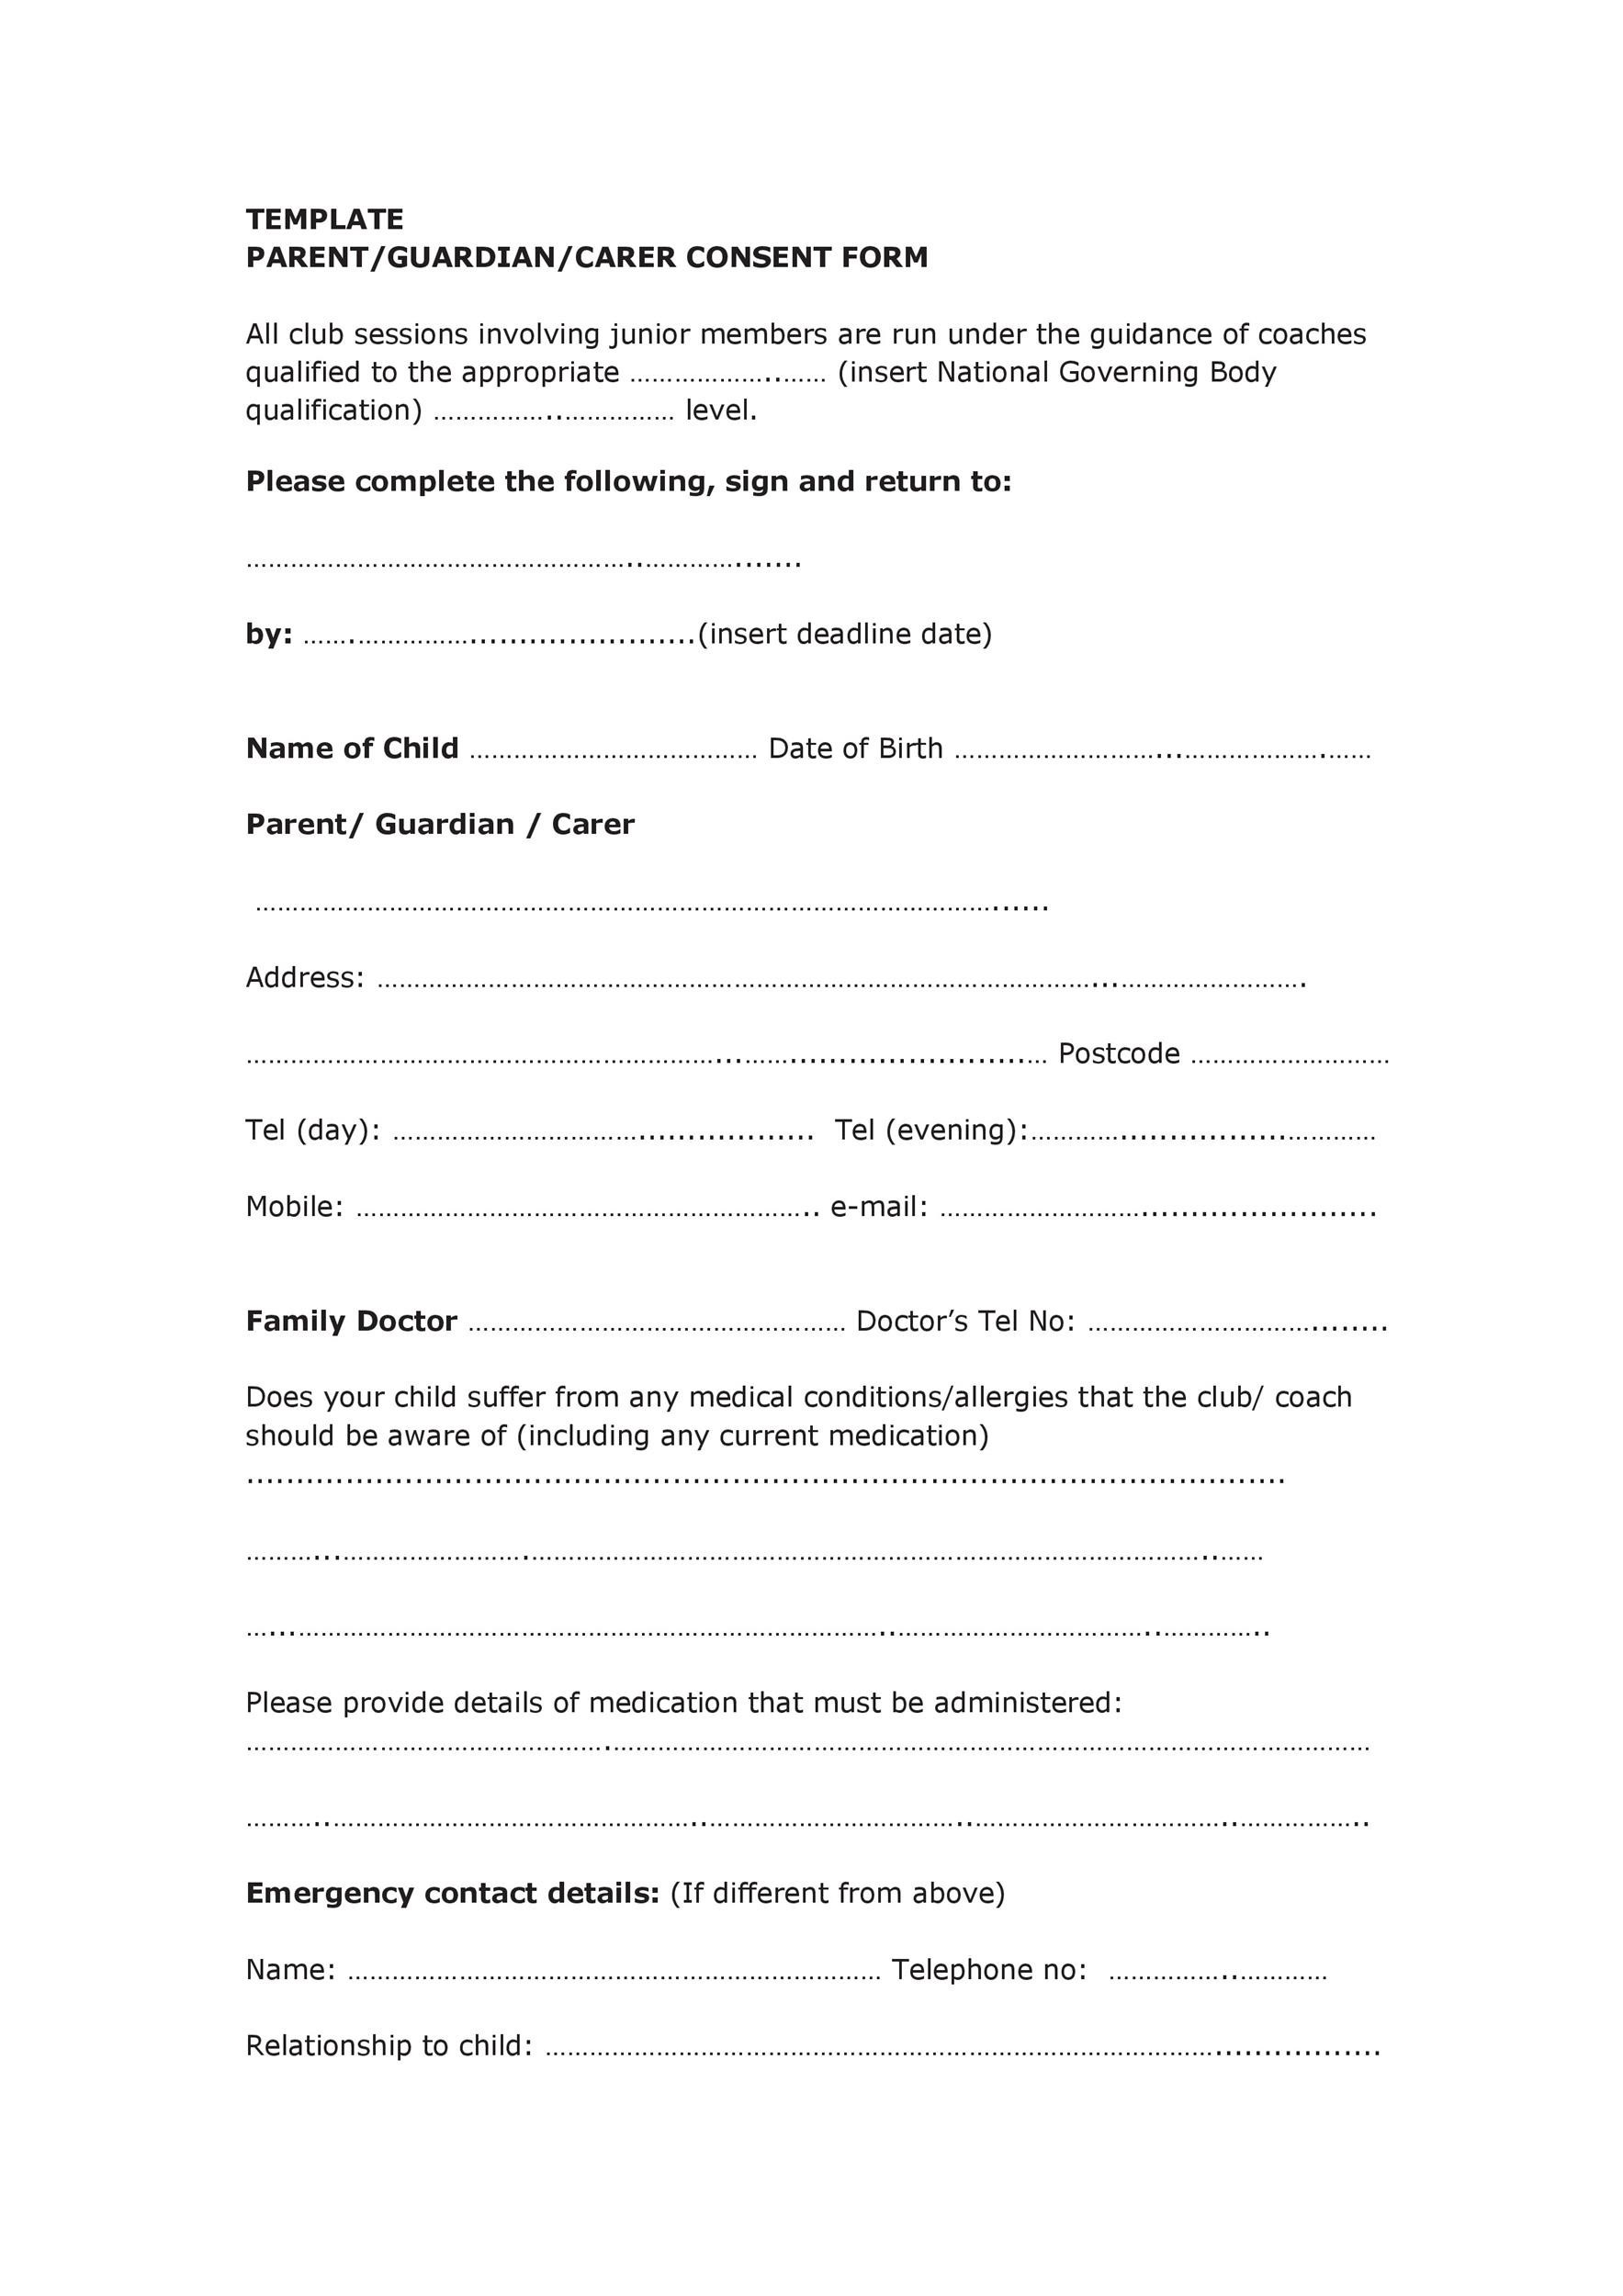 Free parental consent form template 38